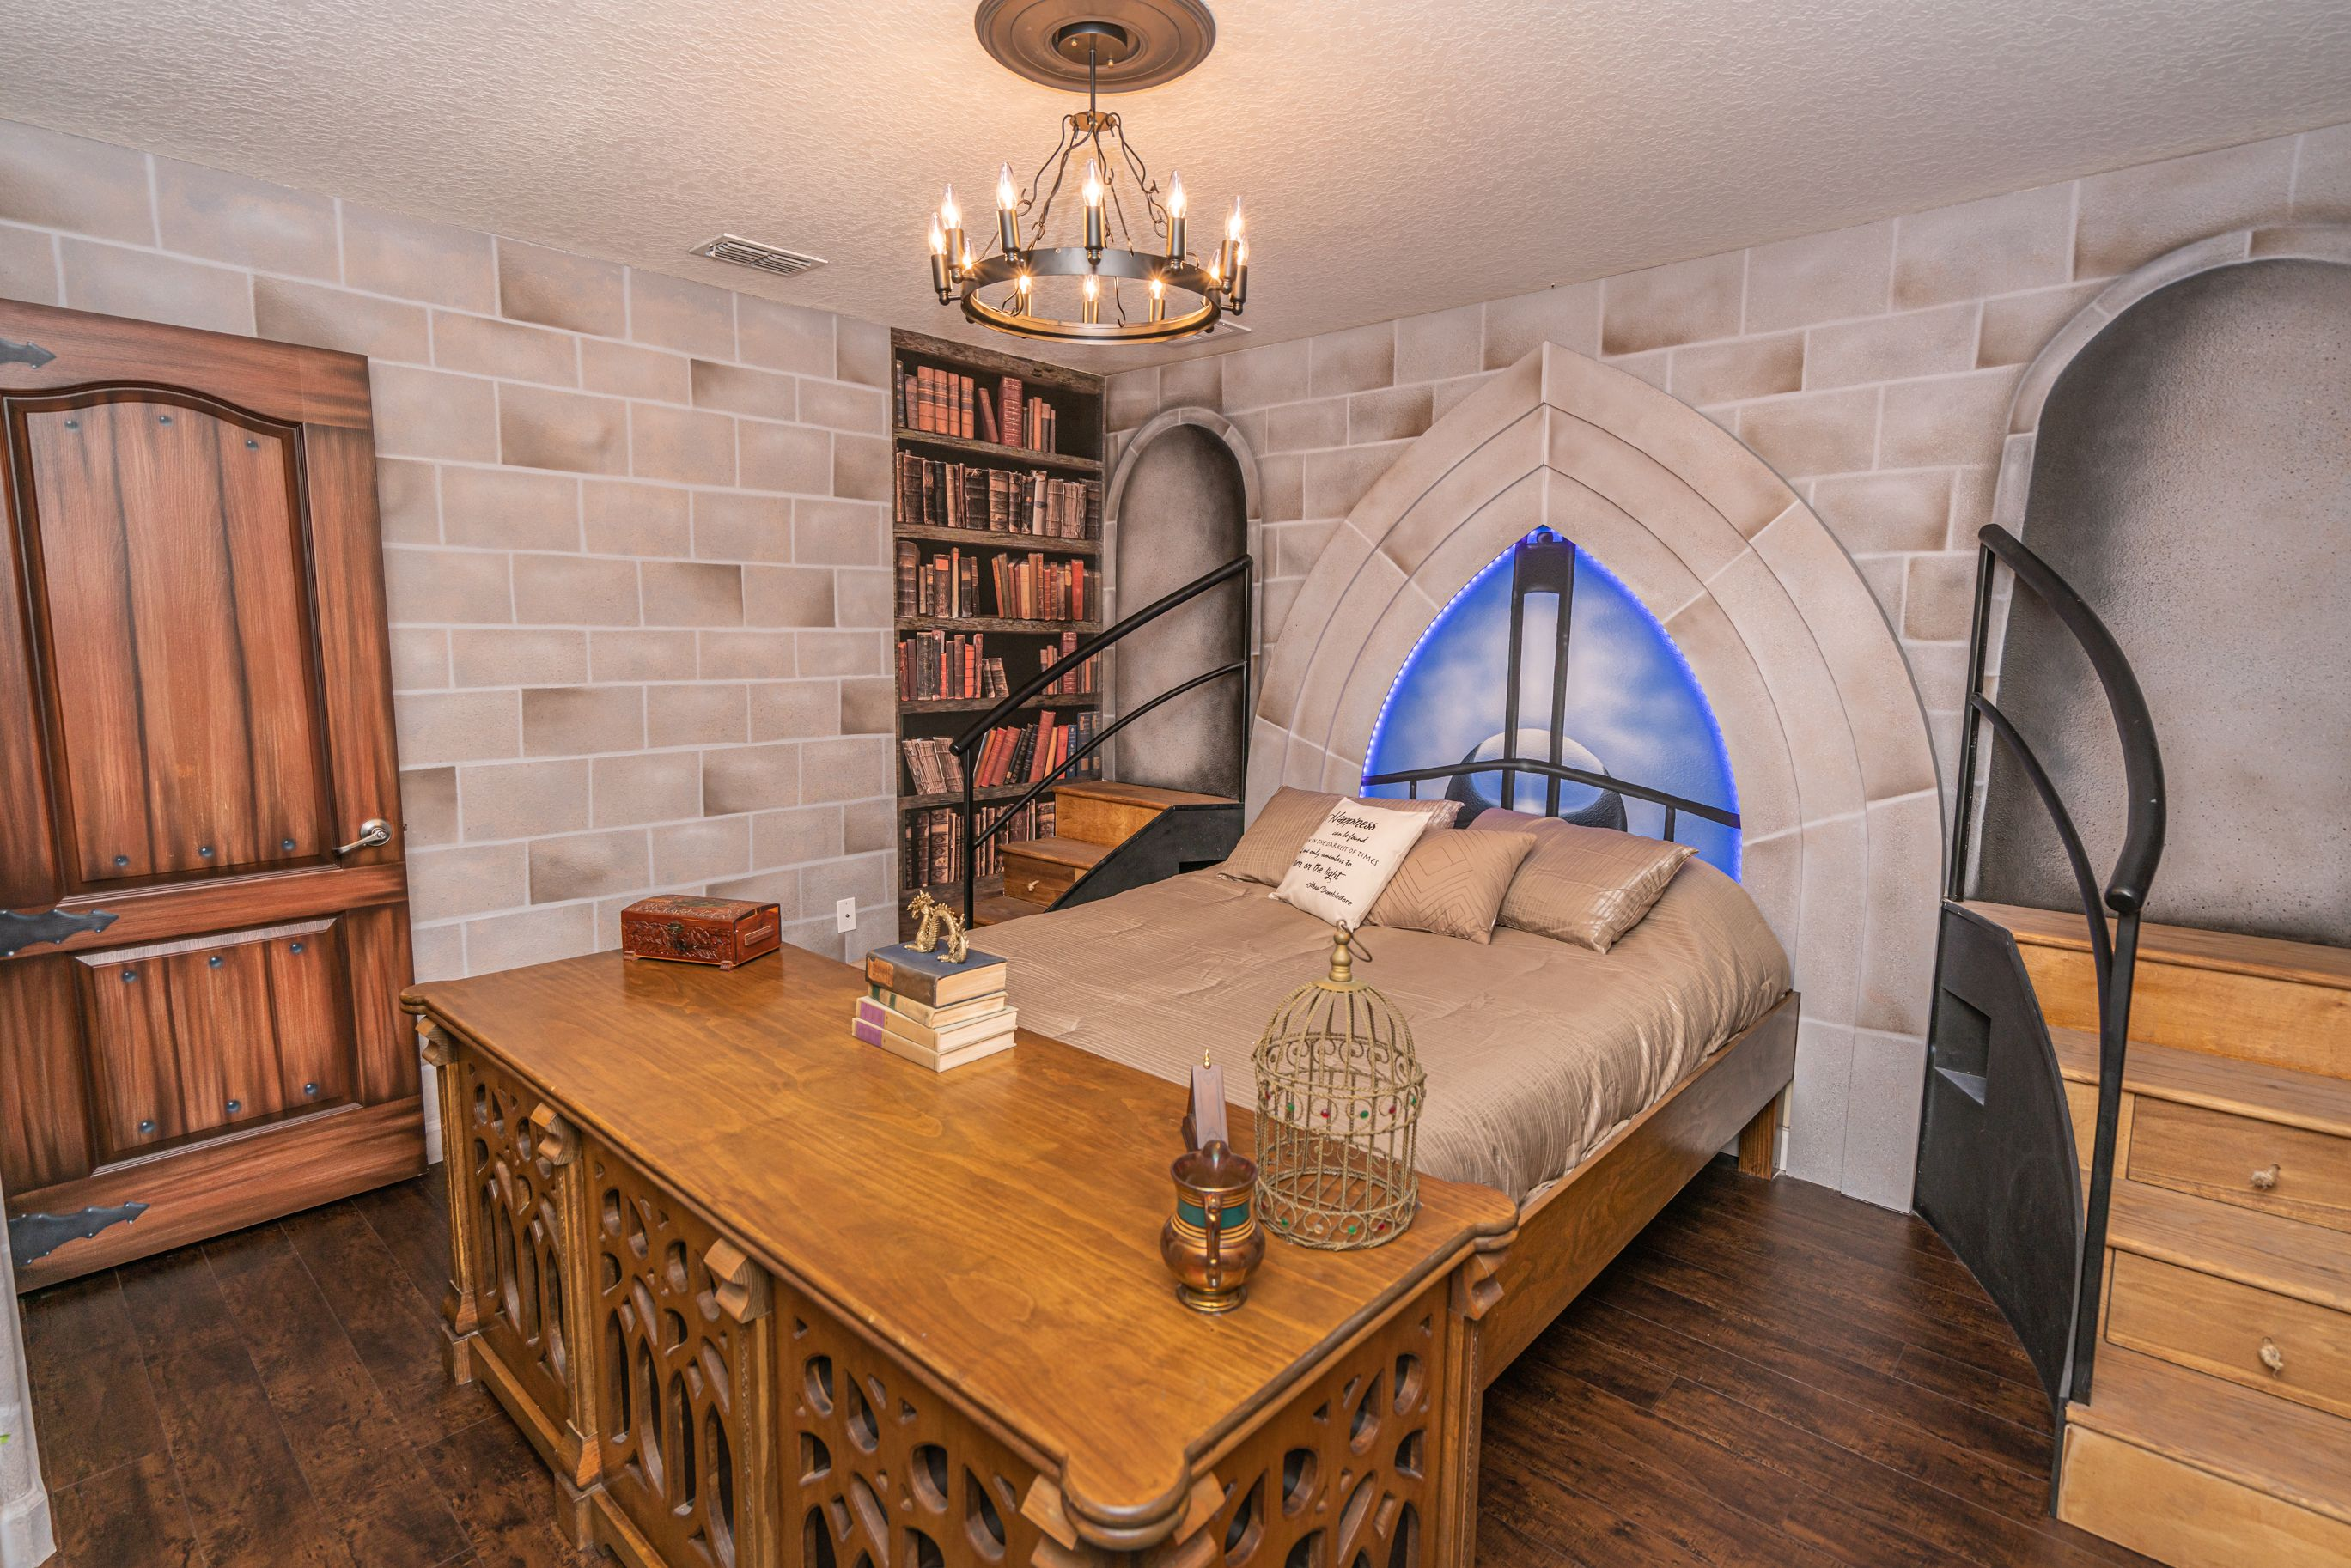 Wizards Way Airbnb In Orlando House Rental Home Bedroom House